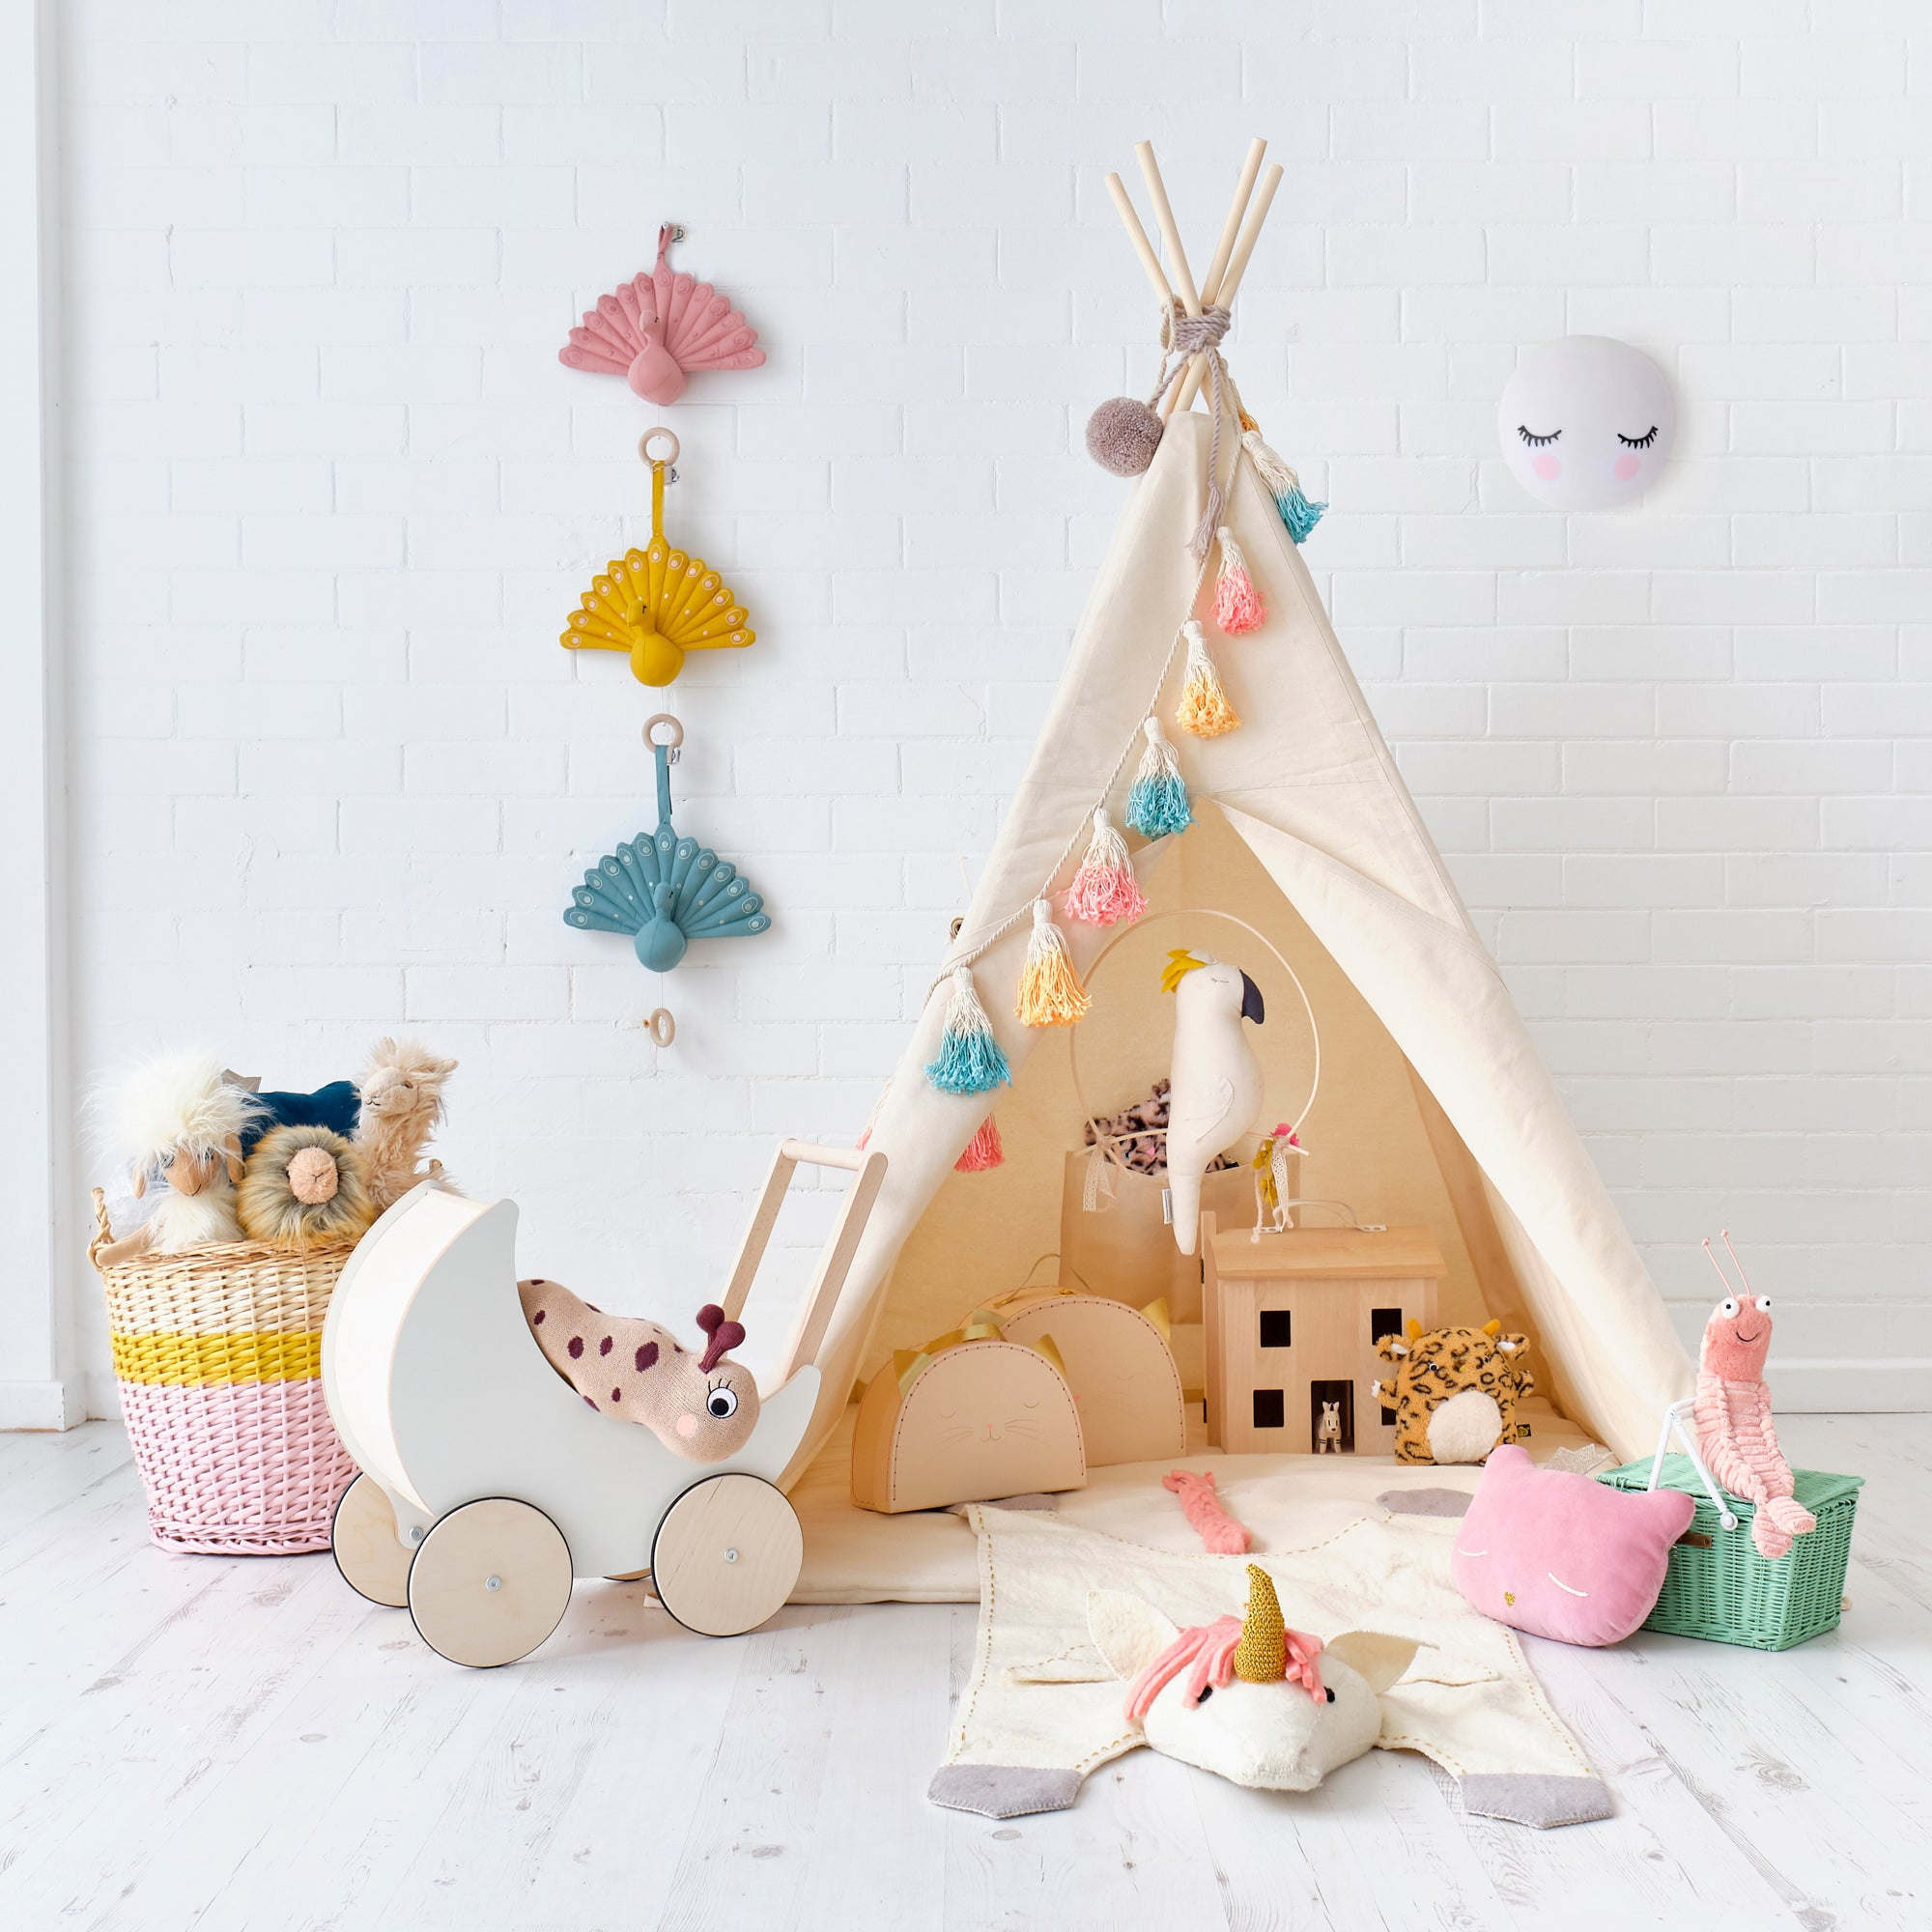 Children's Teepee Tent and Toys, by Bobby Rabbit.